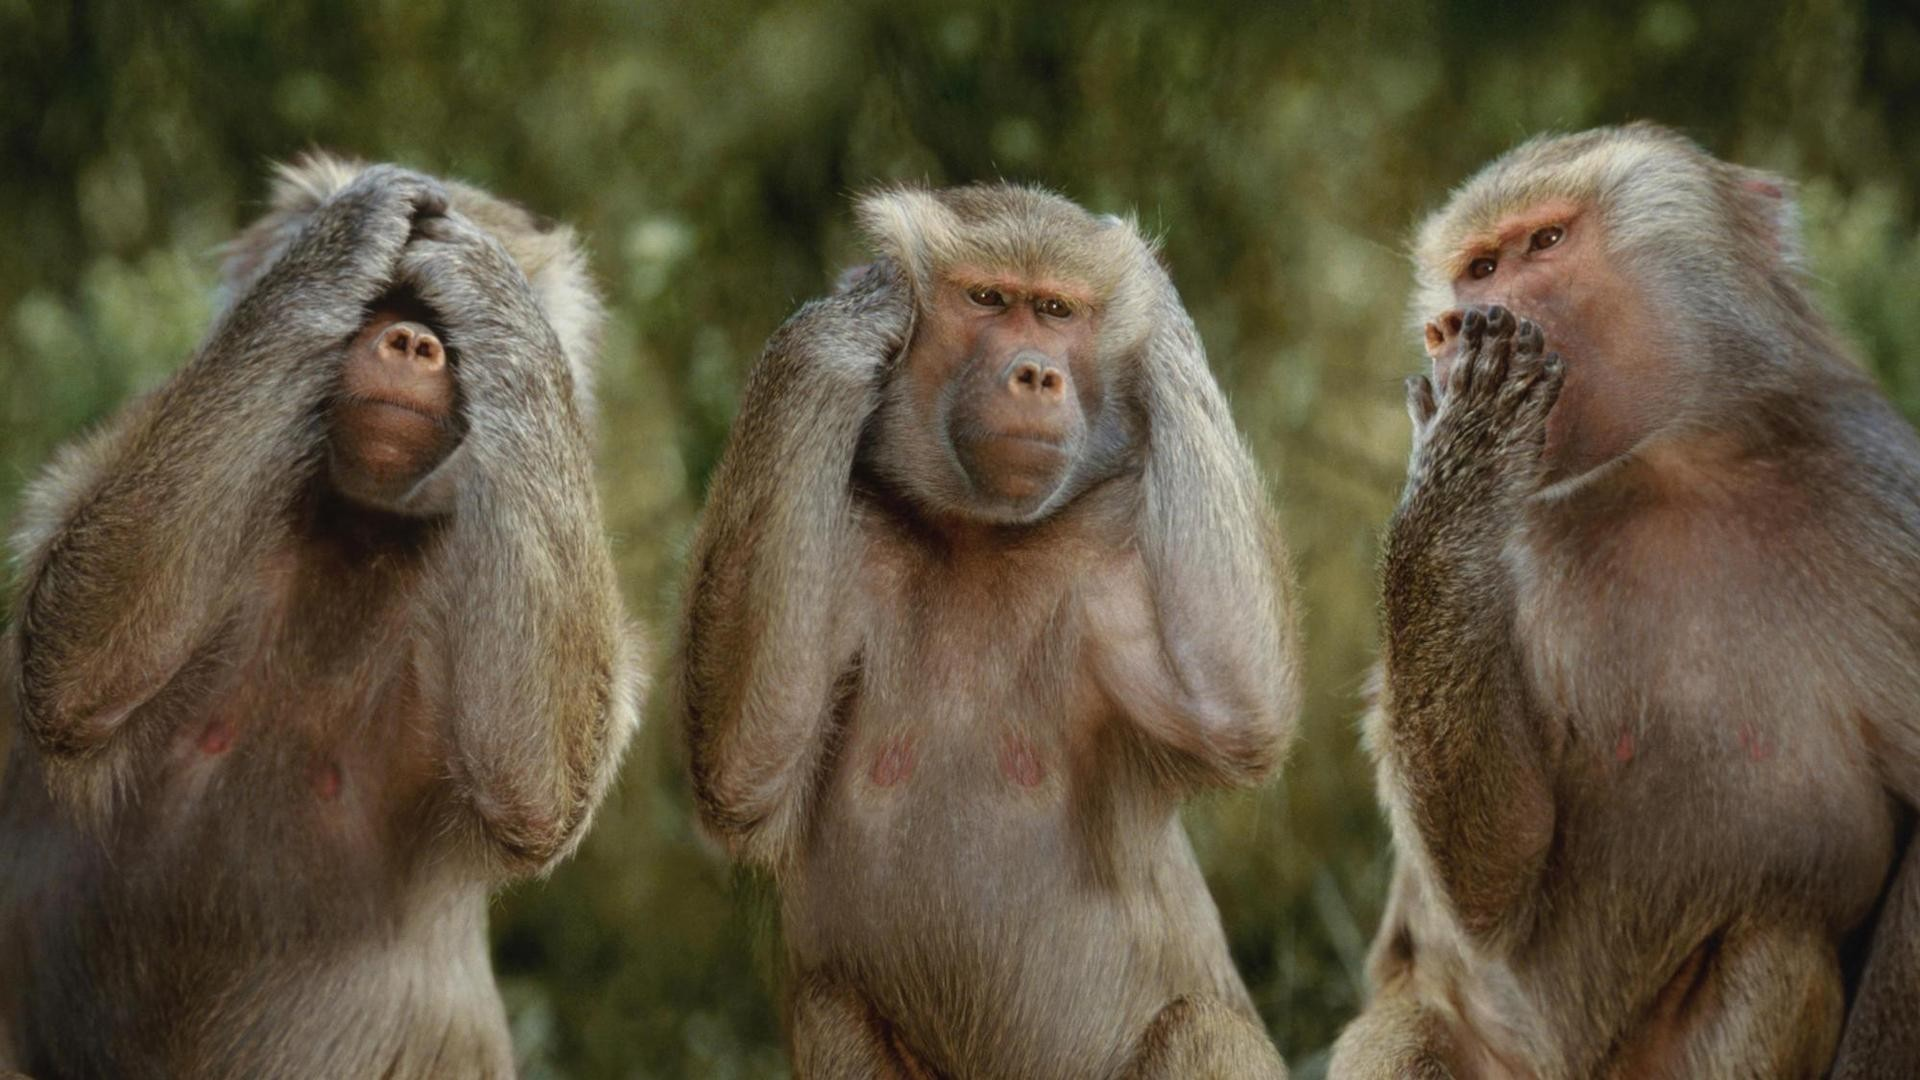 1920x1080 Three Little Monkeys Funny HD Wallpaper